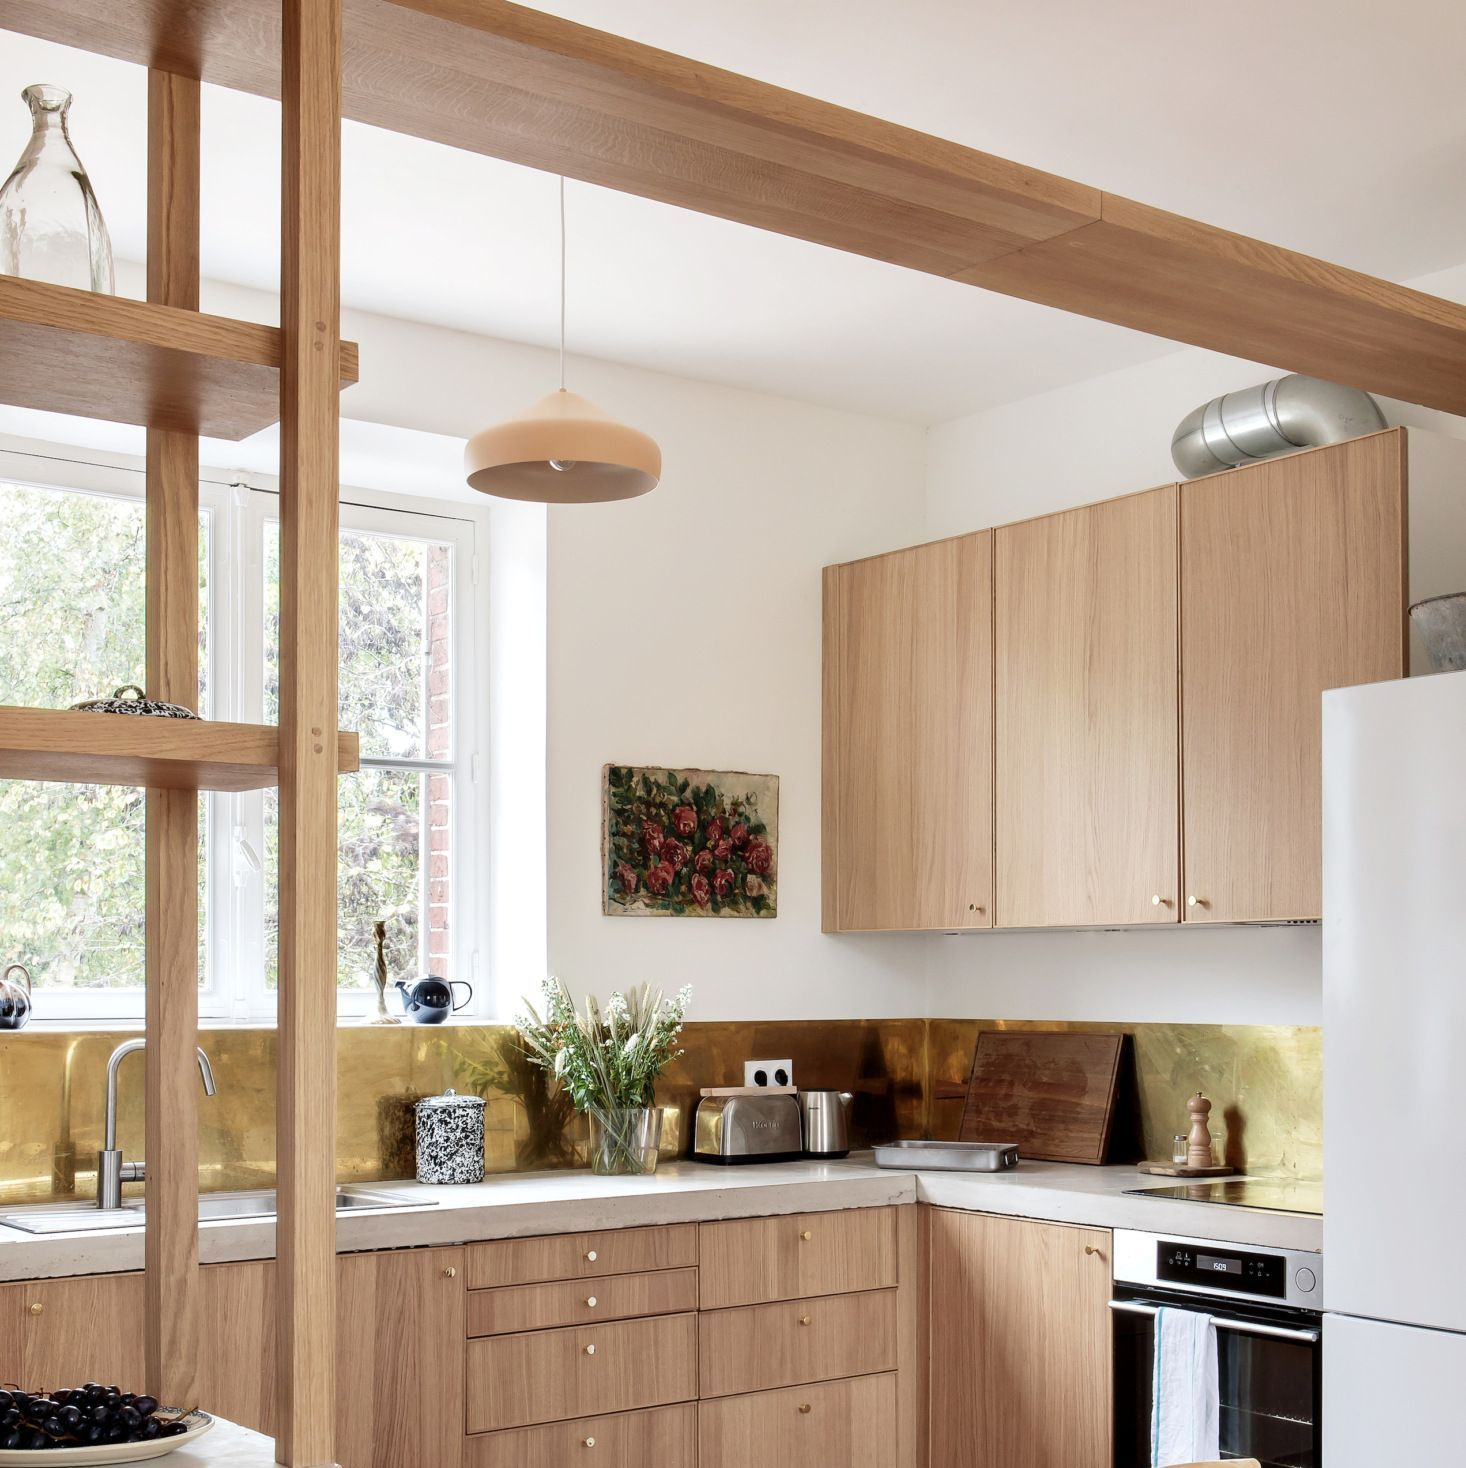 These Have to Be the Most Beautiful IKEA Kitchens of All